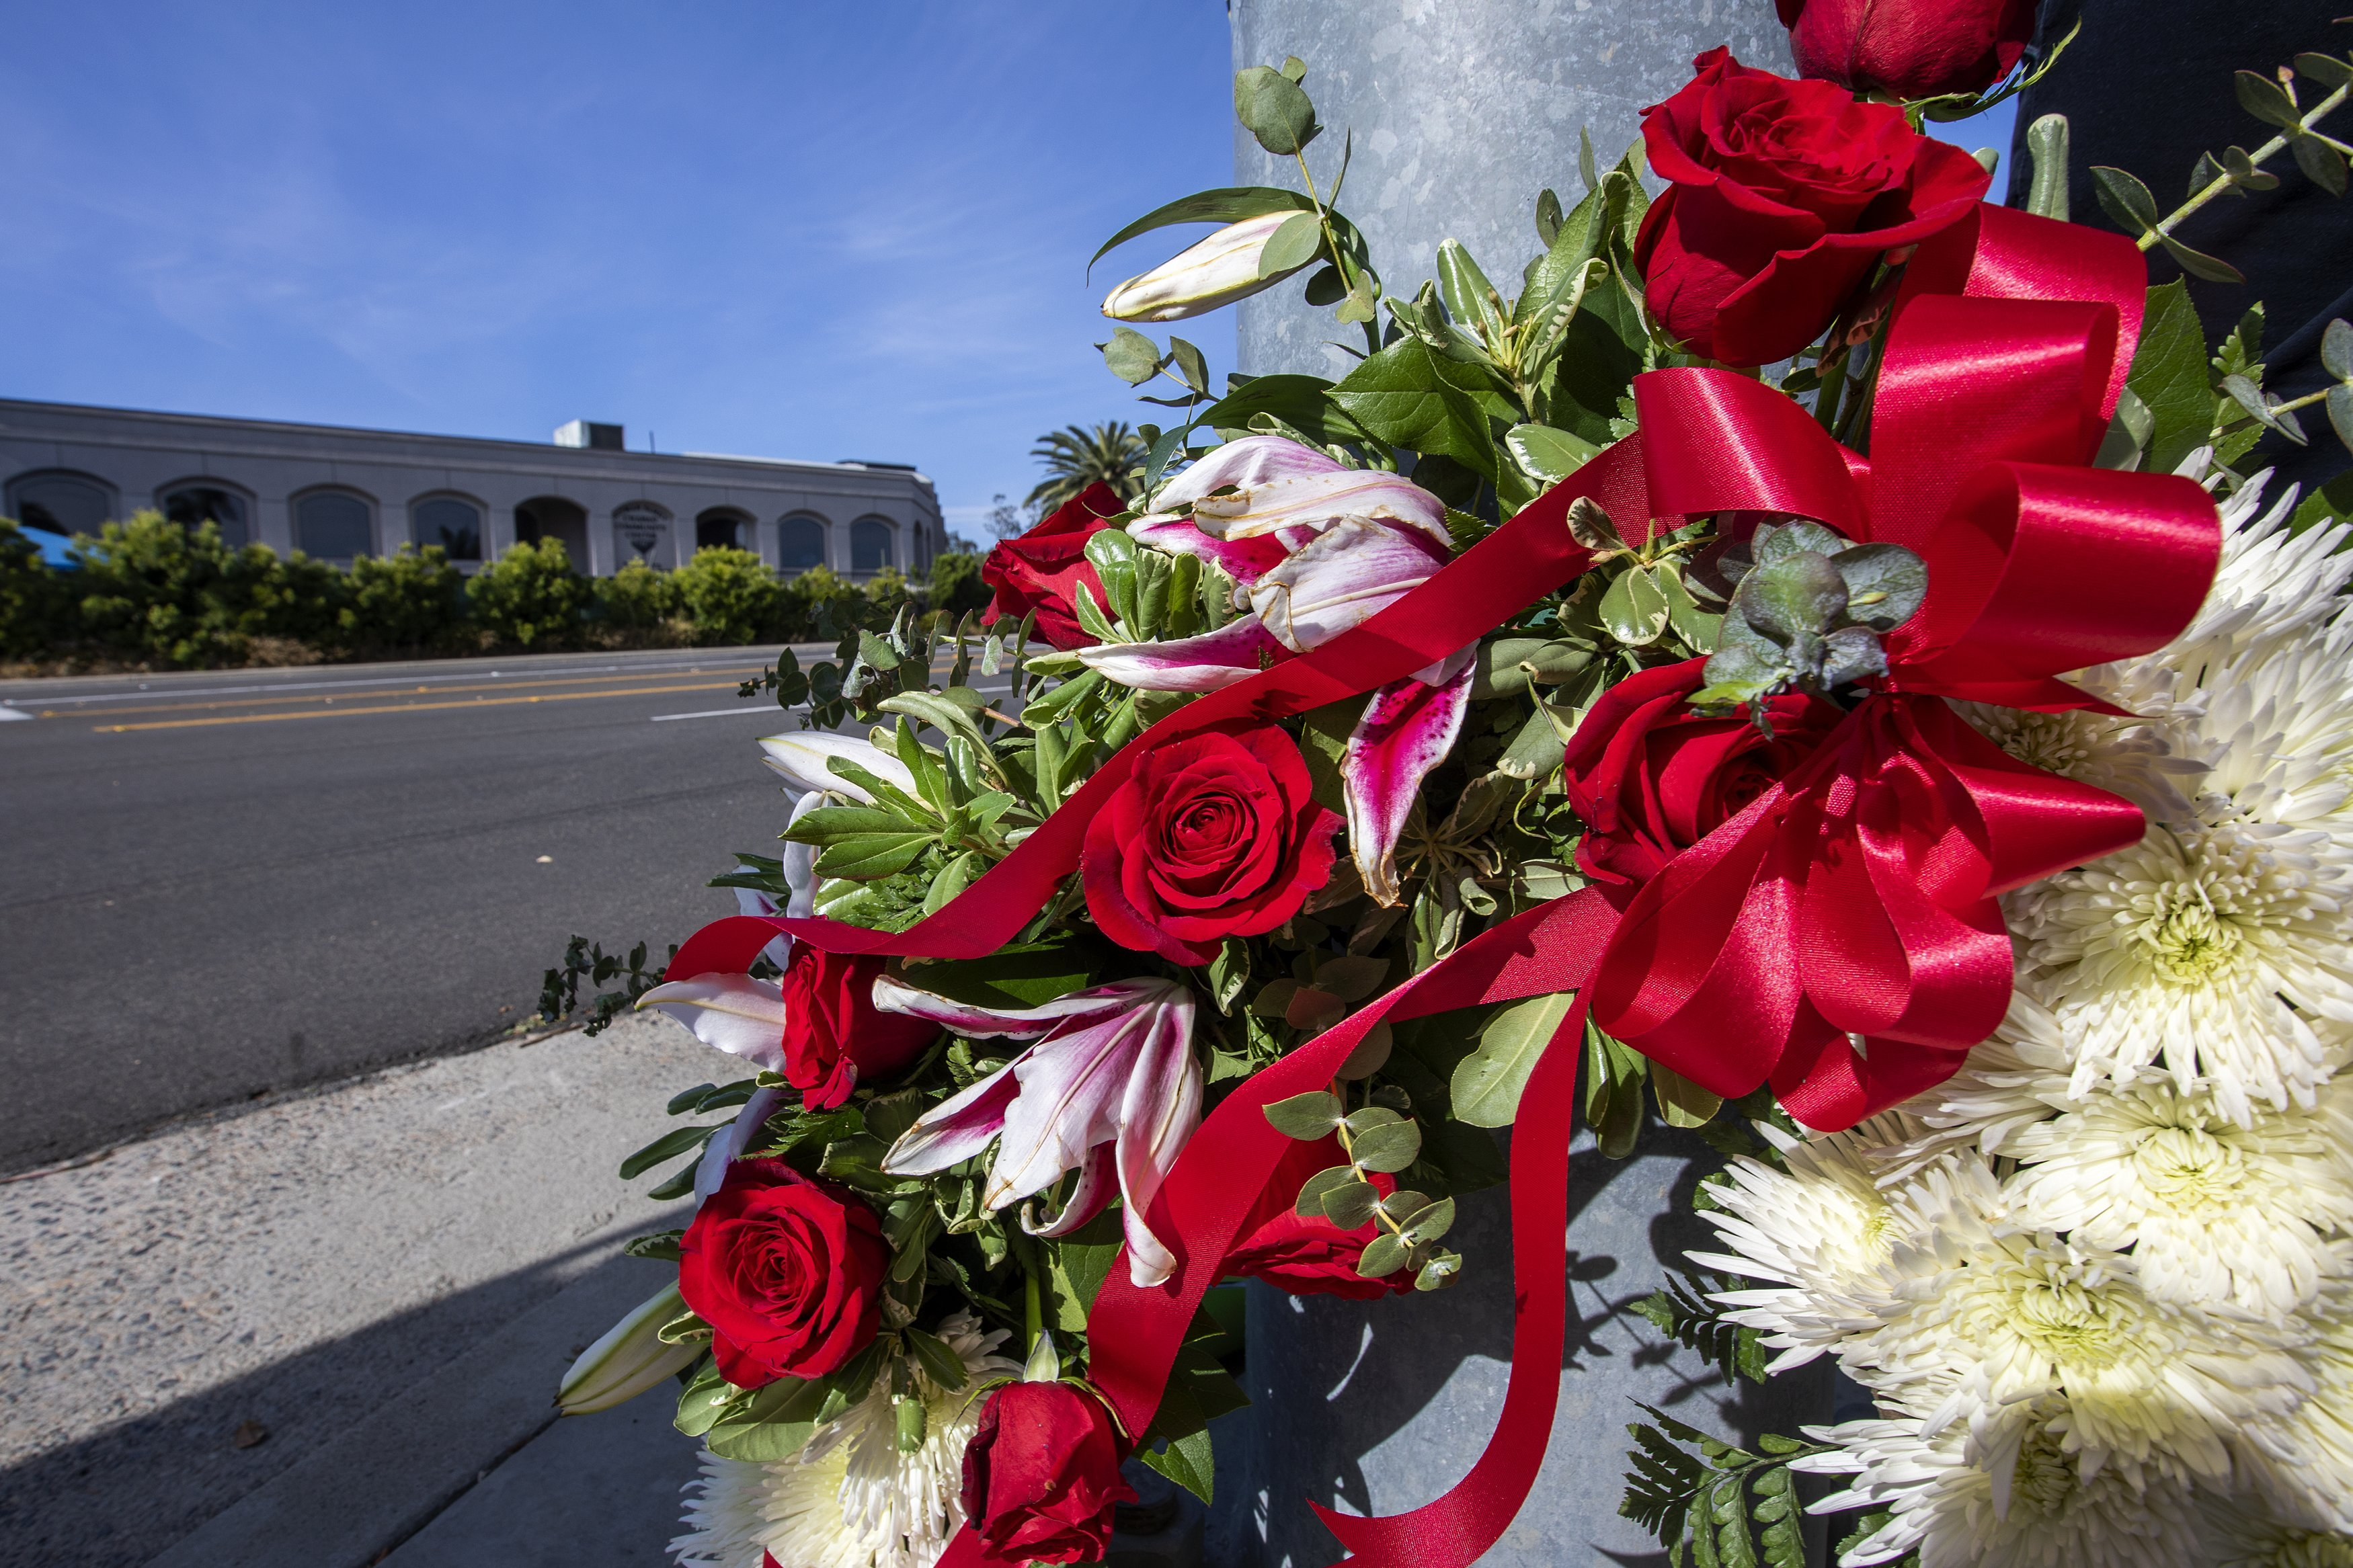 A wreath left outside the Congregation Chabad synagogue in Poway, California | Photo: Getty Images